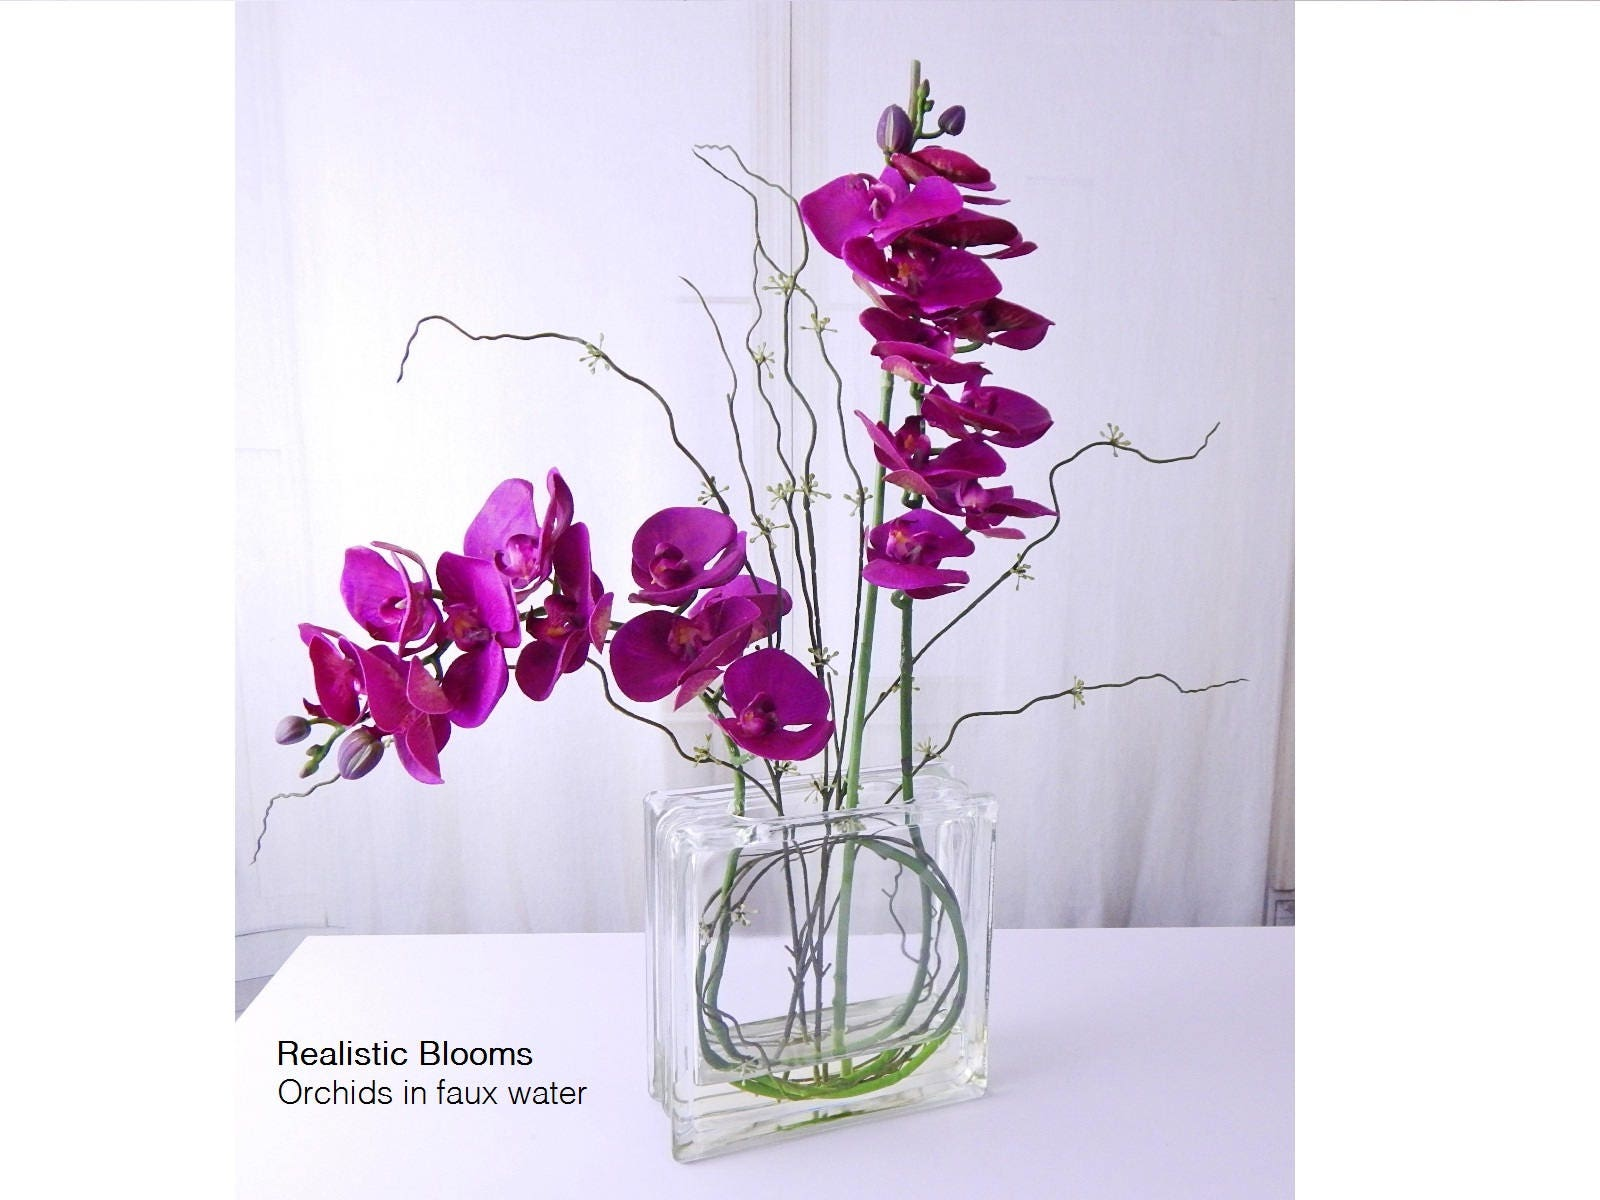 Fuchsiapurple silk orchidorchids phalaenopsis plant glass fuchsiapurple silk orchidorchids phalaenopsis plant glass faux water acrylicillusion real touch flowers floral arrangement mightylinksfo